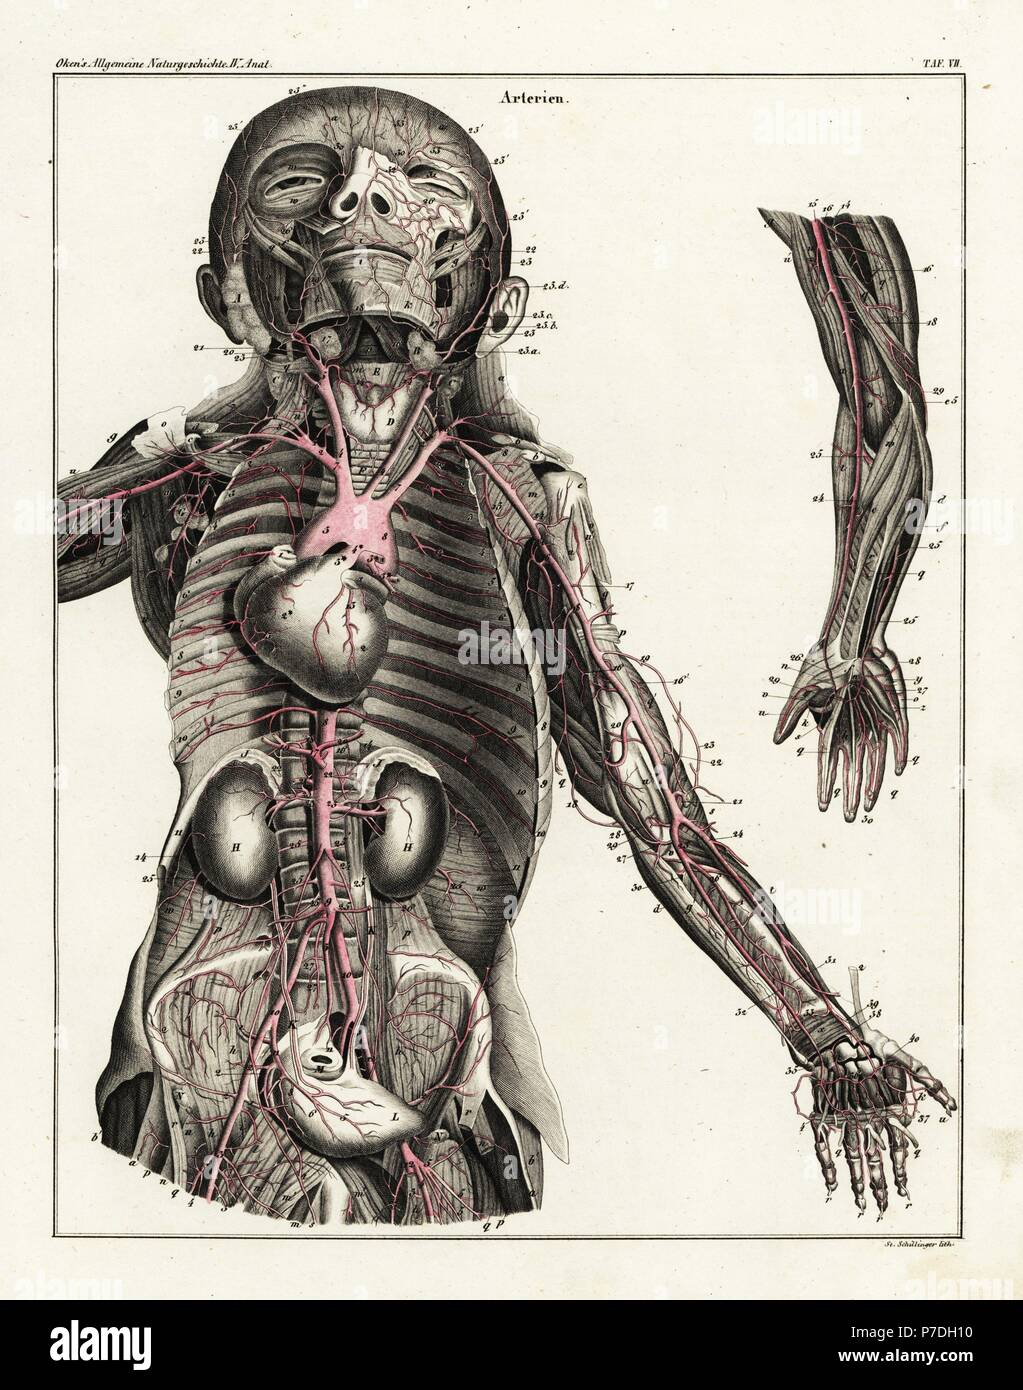 Anatomy Of The Human Arterial System In The Upper Torso